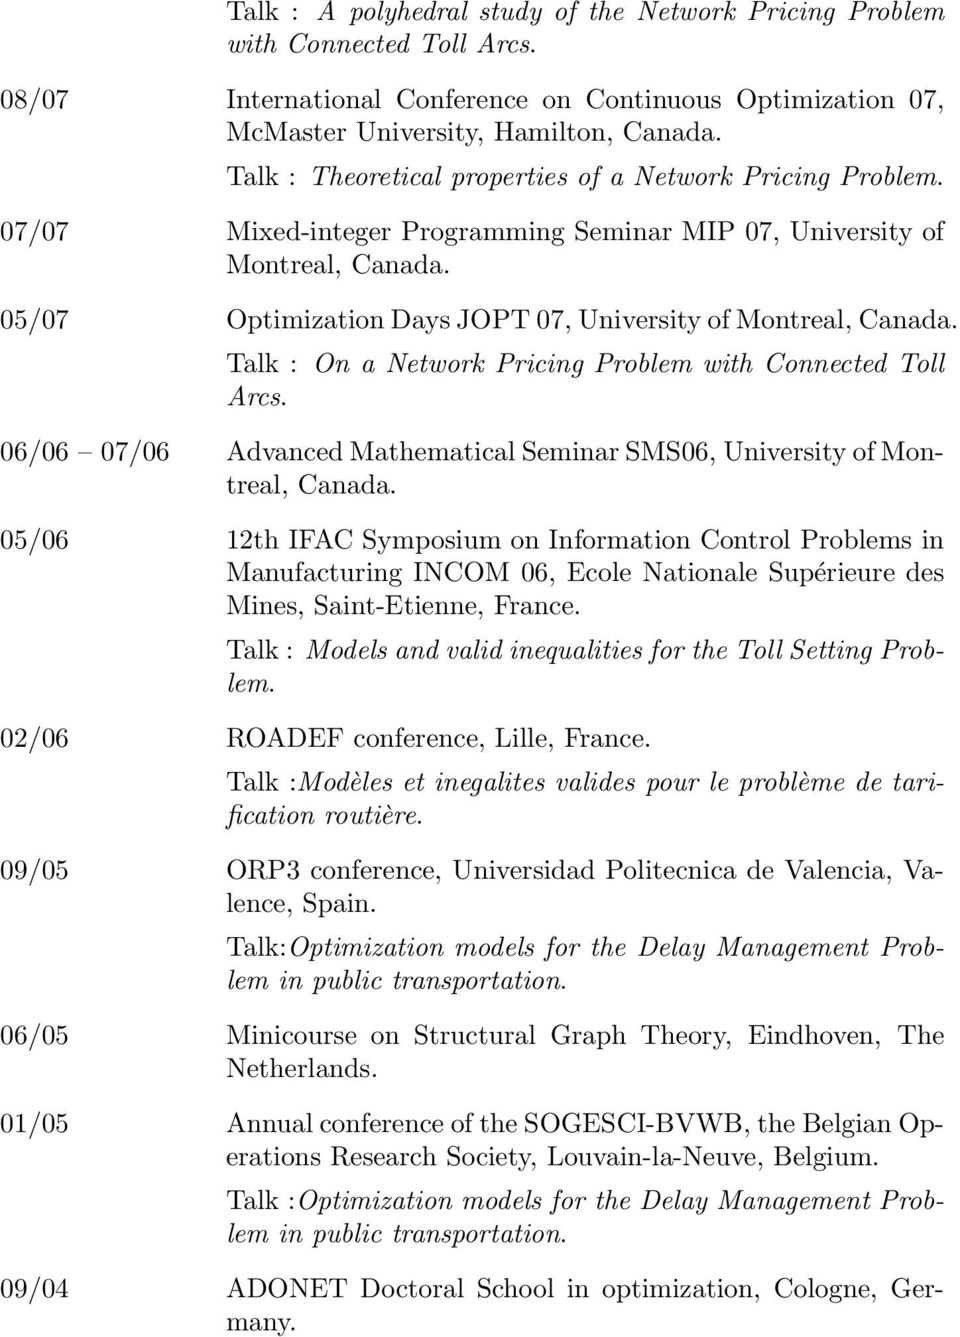 05/07 Optimization Days JOPT 07, University of Montreal, Canada. Talk : On a Network Pricing Problem with Connected Toll Arcs.